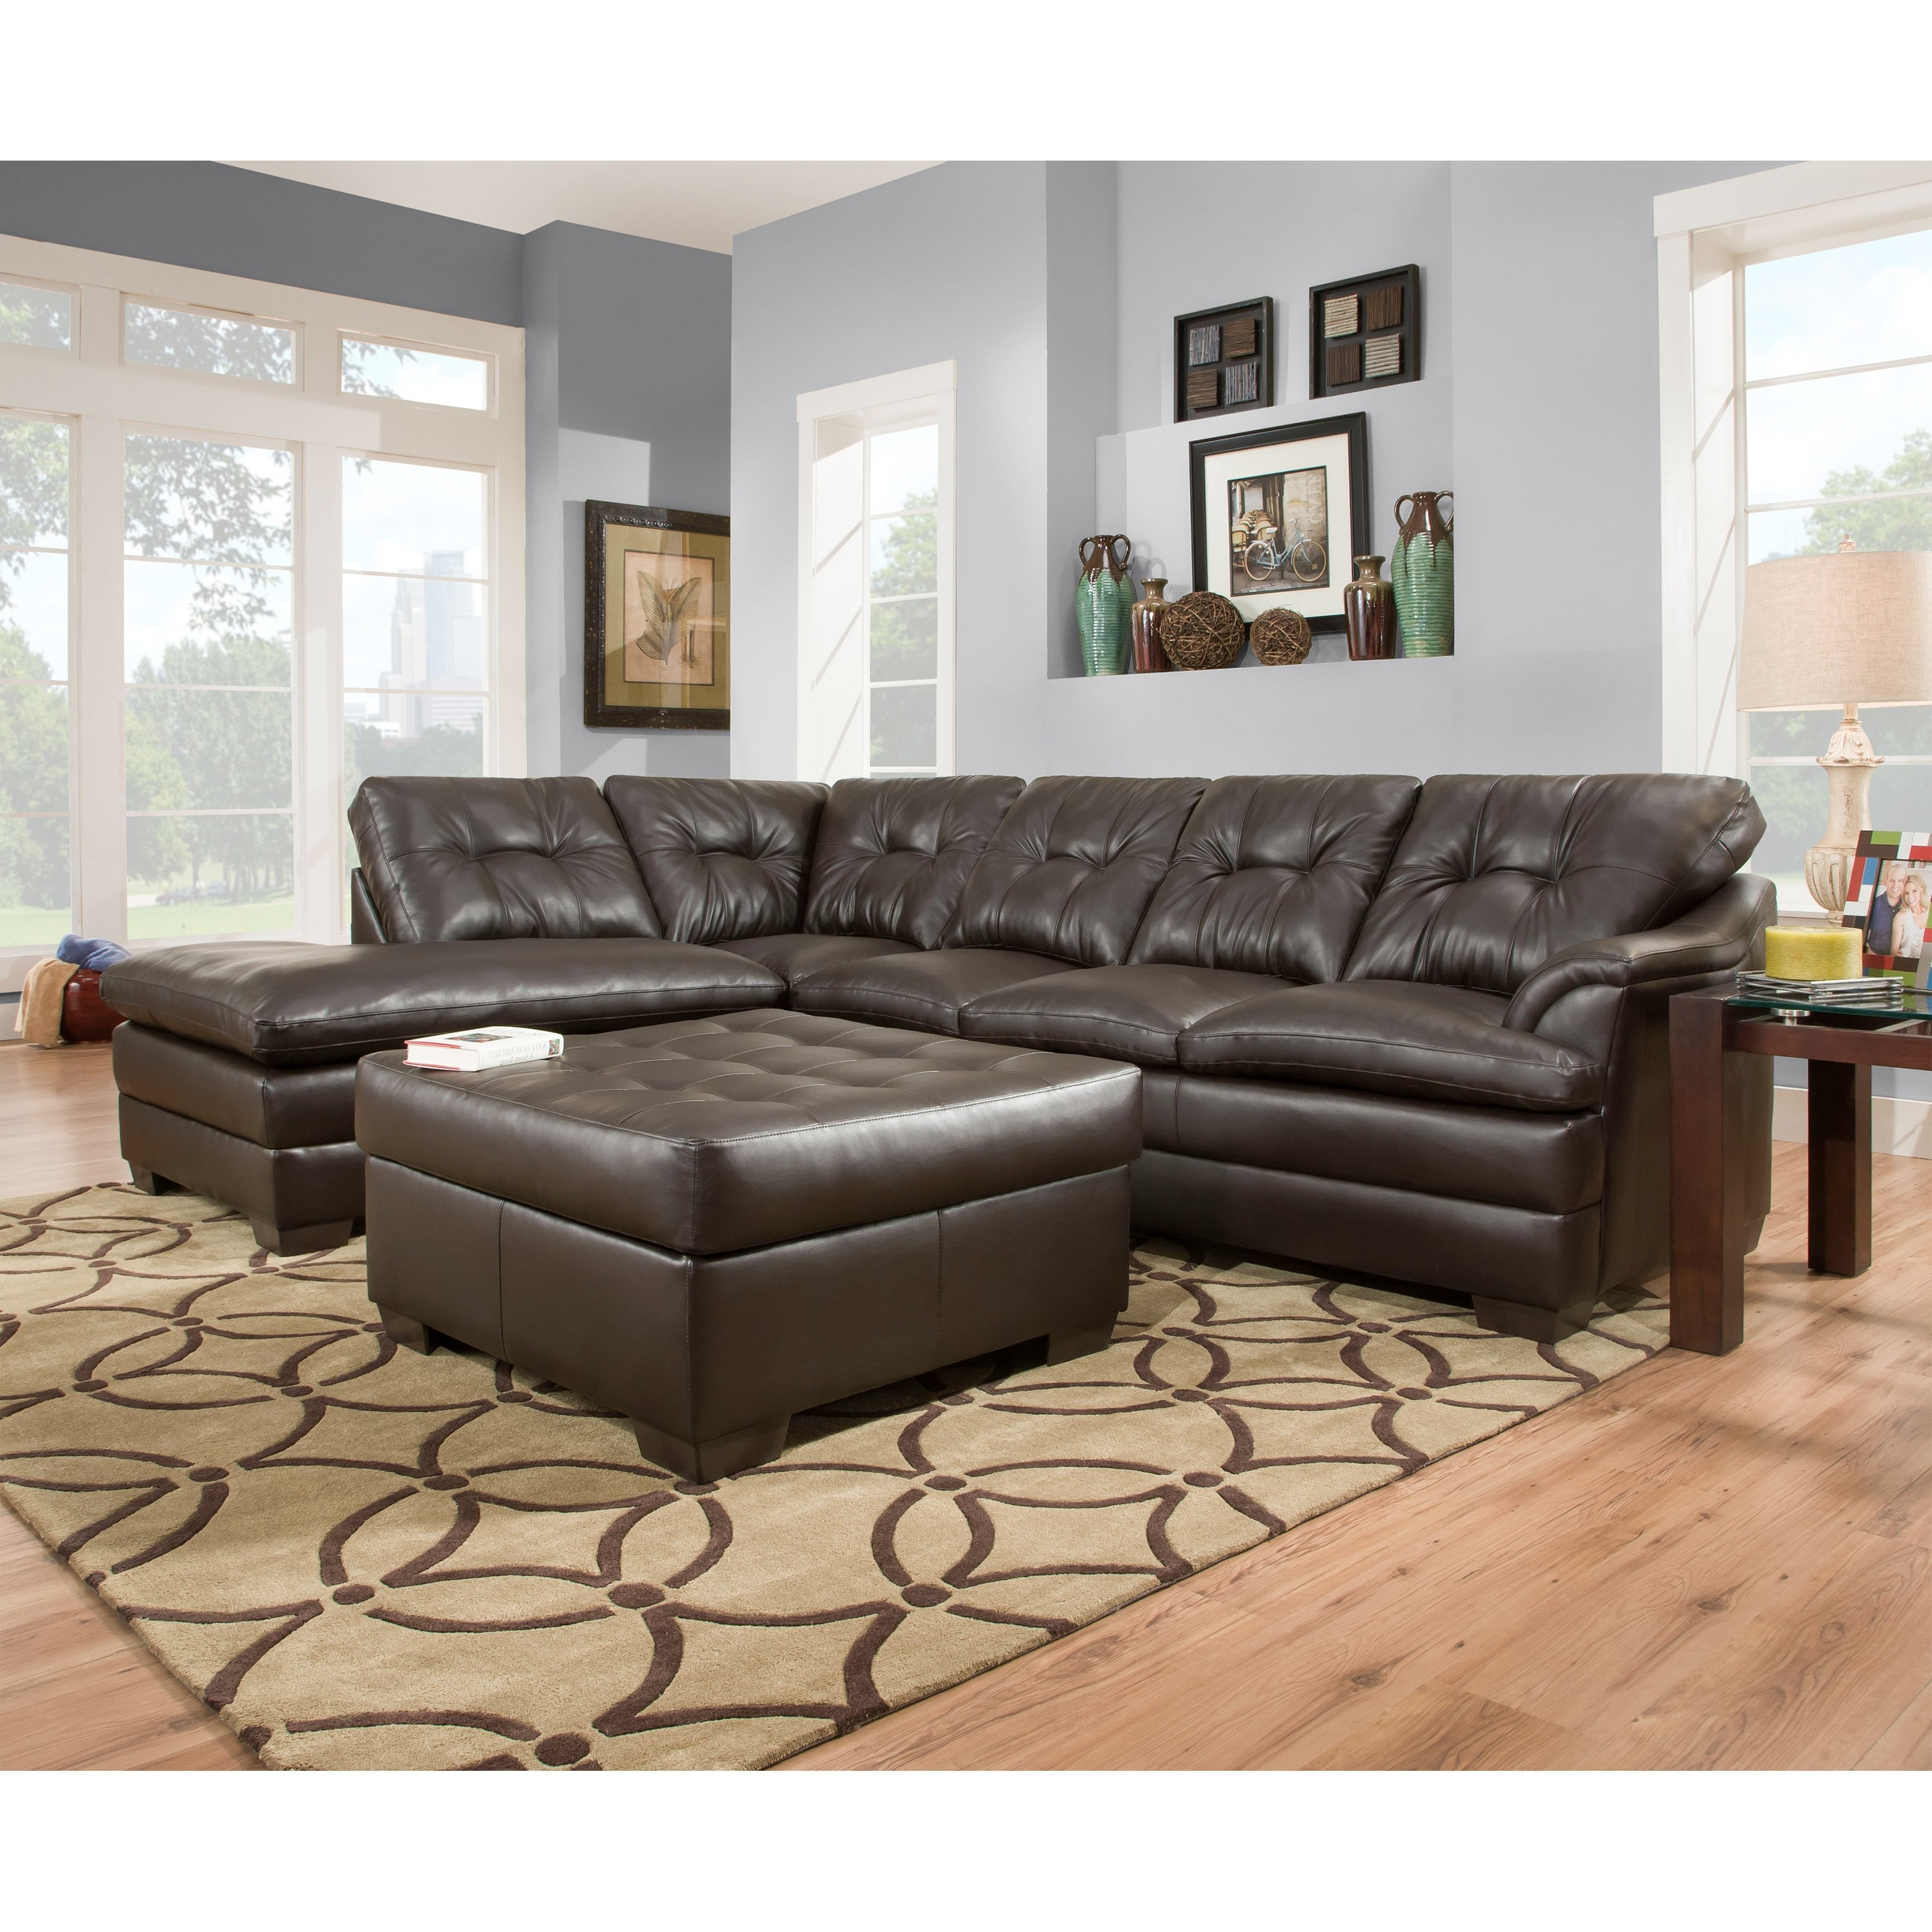 Simmons Sectional Sofas Within Preferred Simmons Upholstery Apollo Sectional With Optional Ottoman (View 15 of 20)